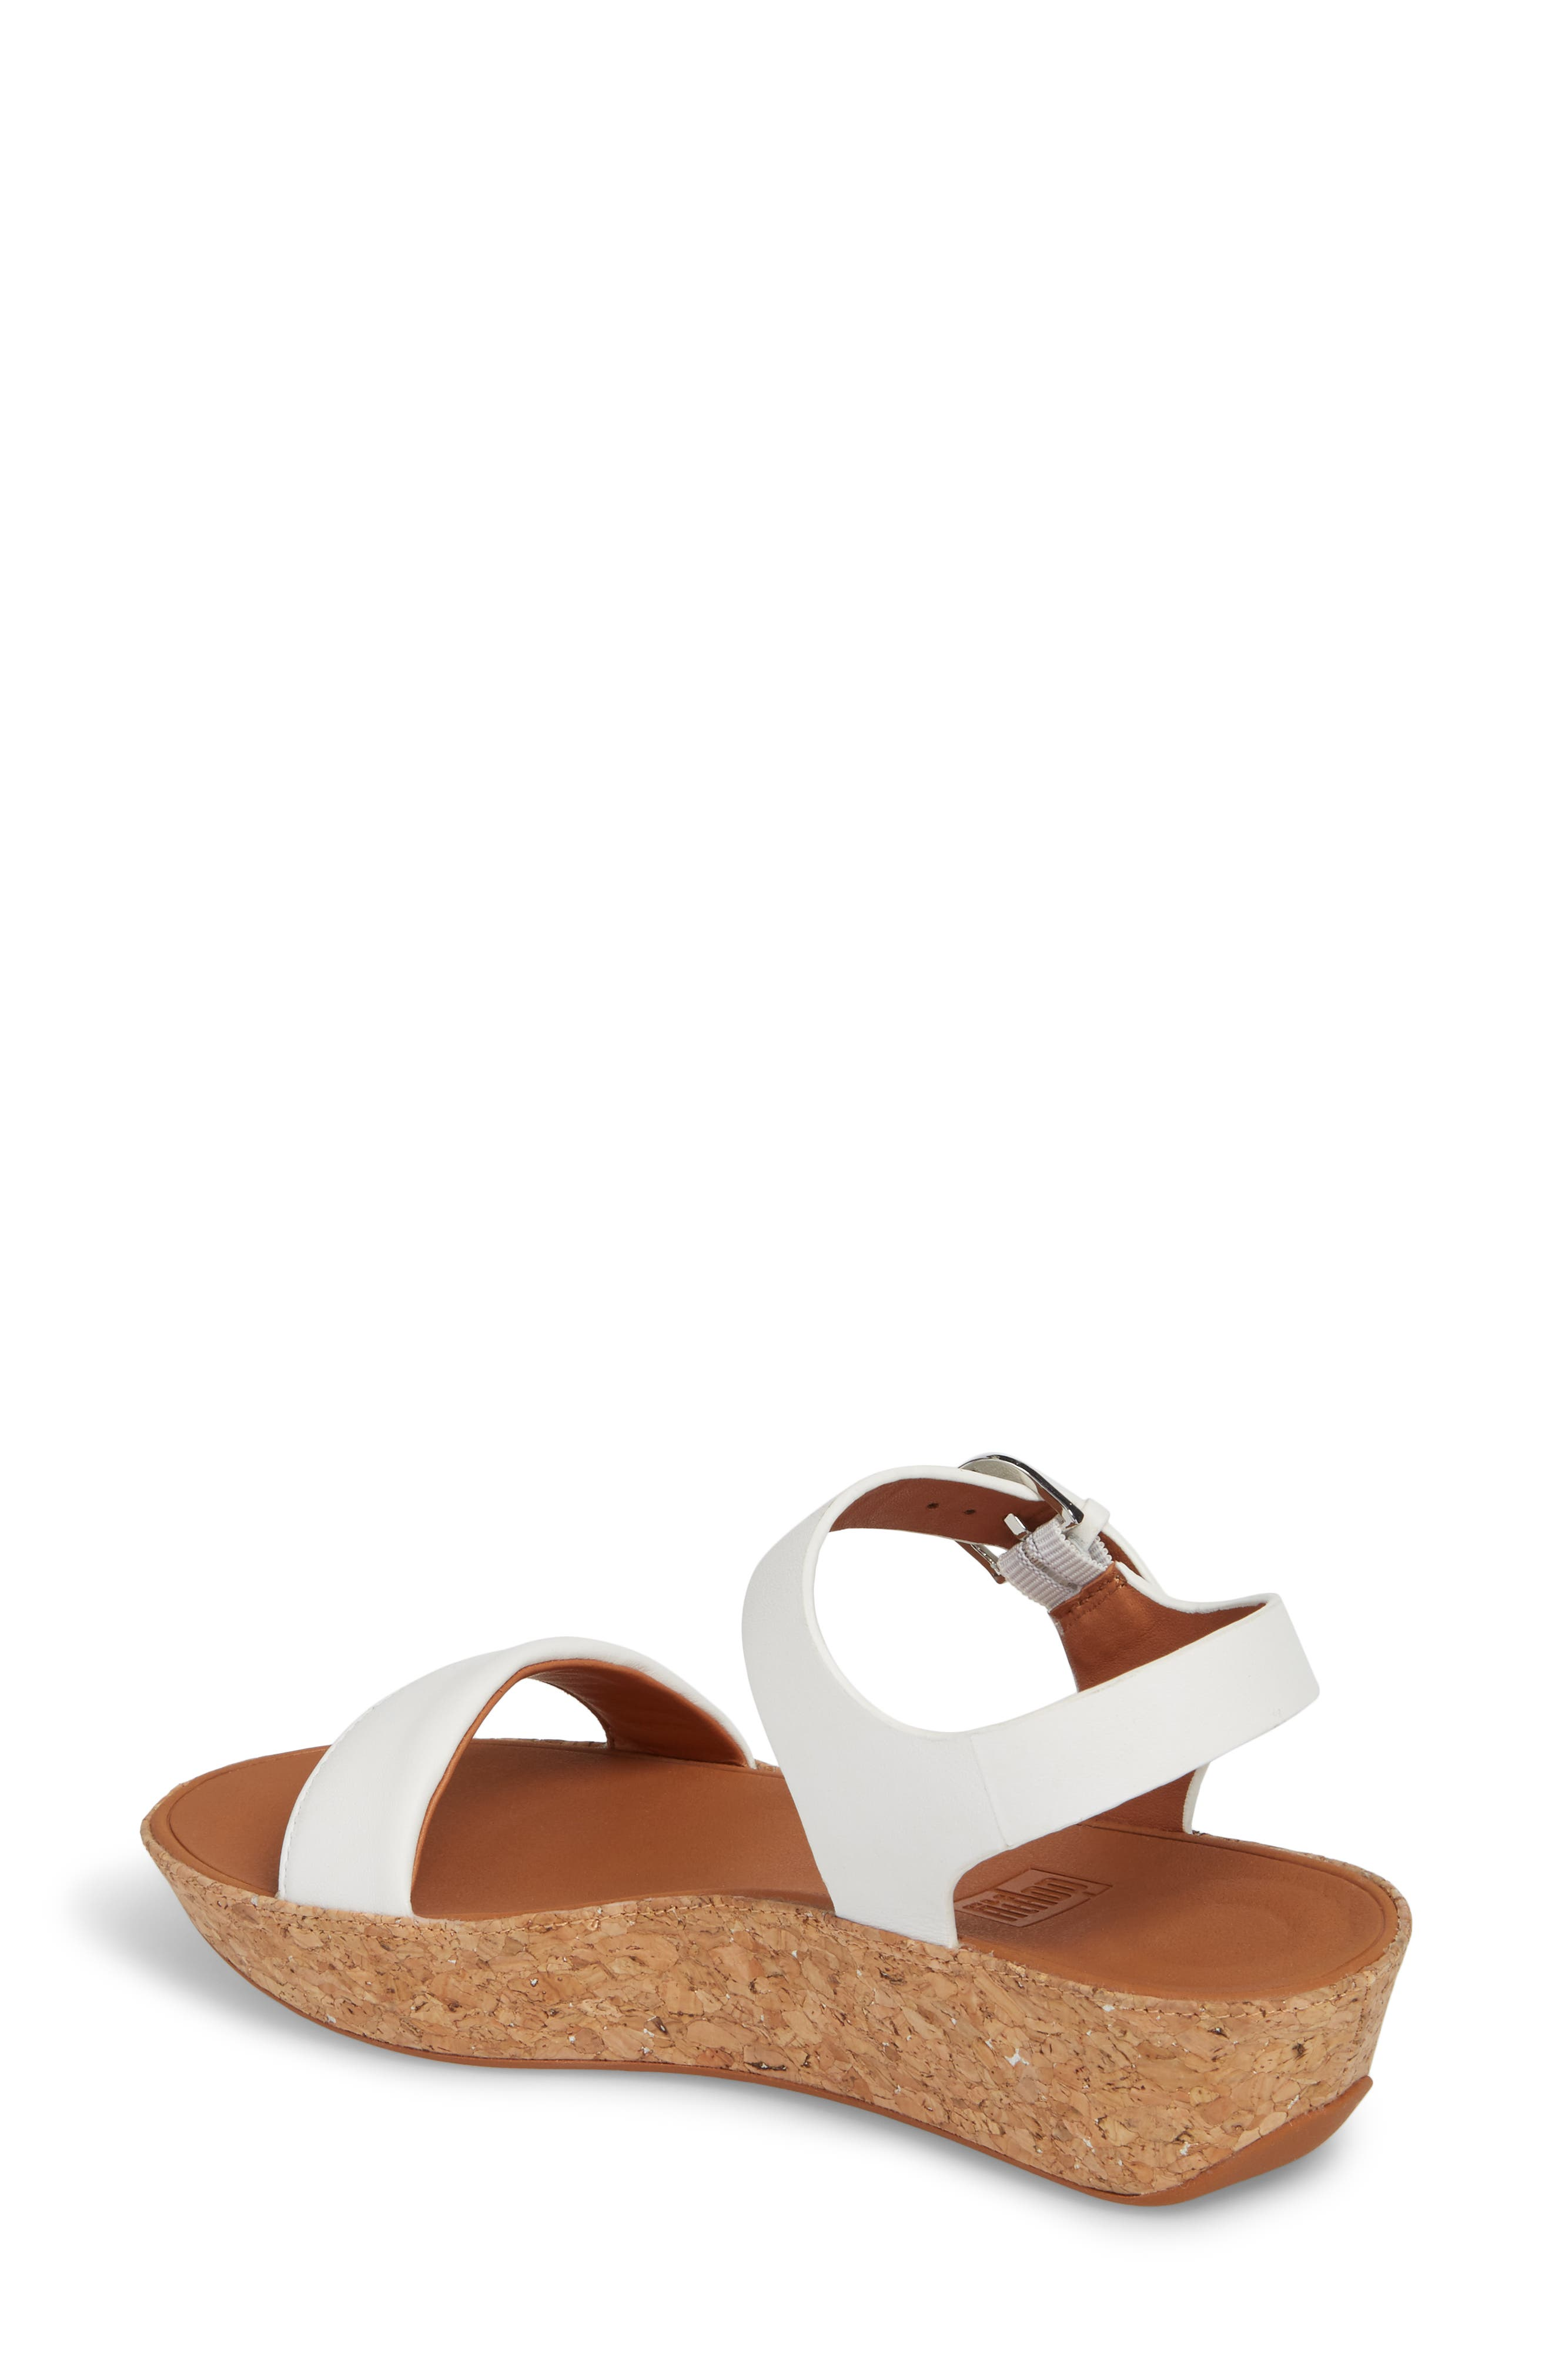 Bon II Platform Sandal,                             Alternate thumbnail 2, color,                             Urban White Leather